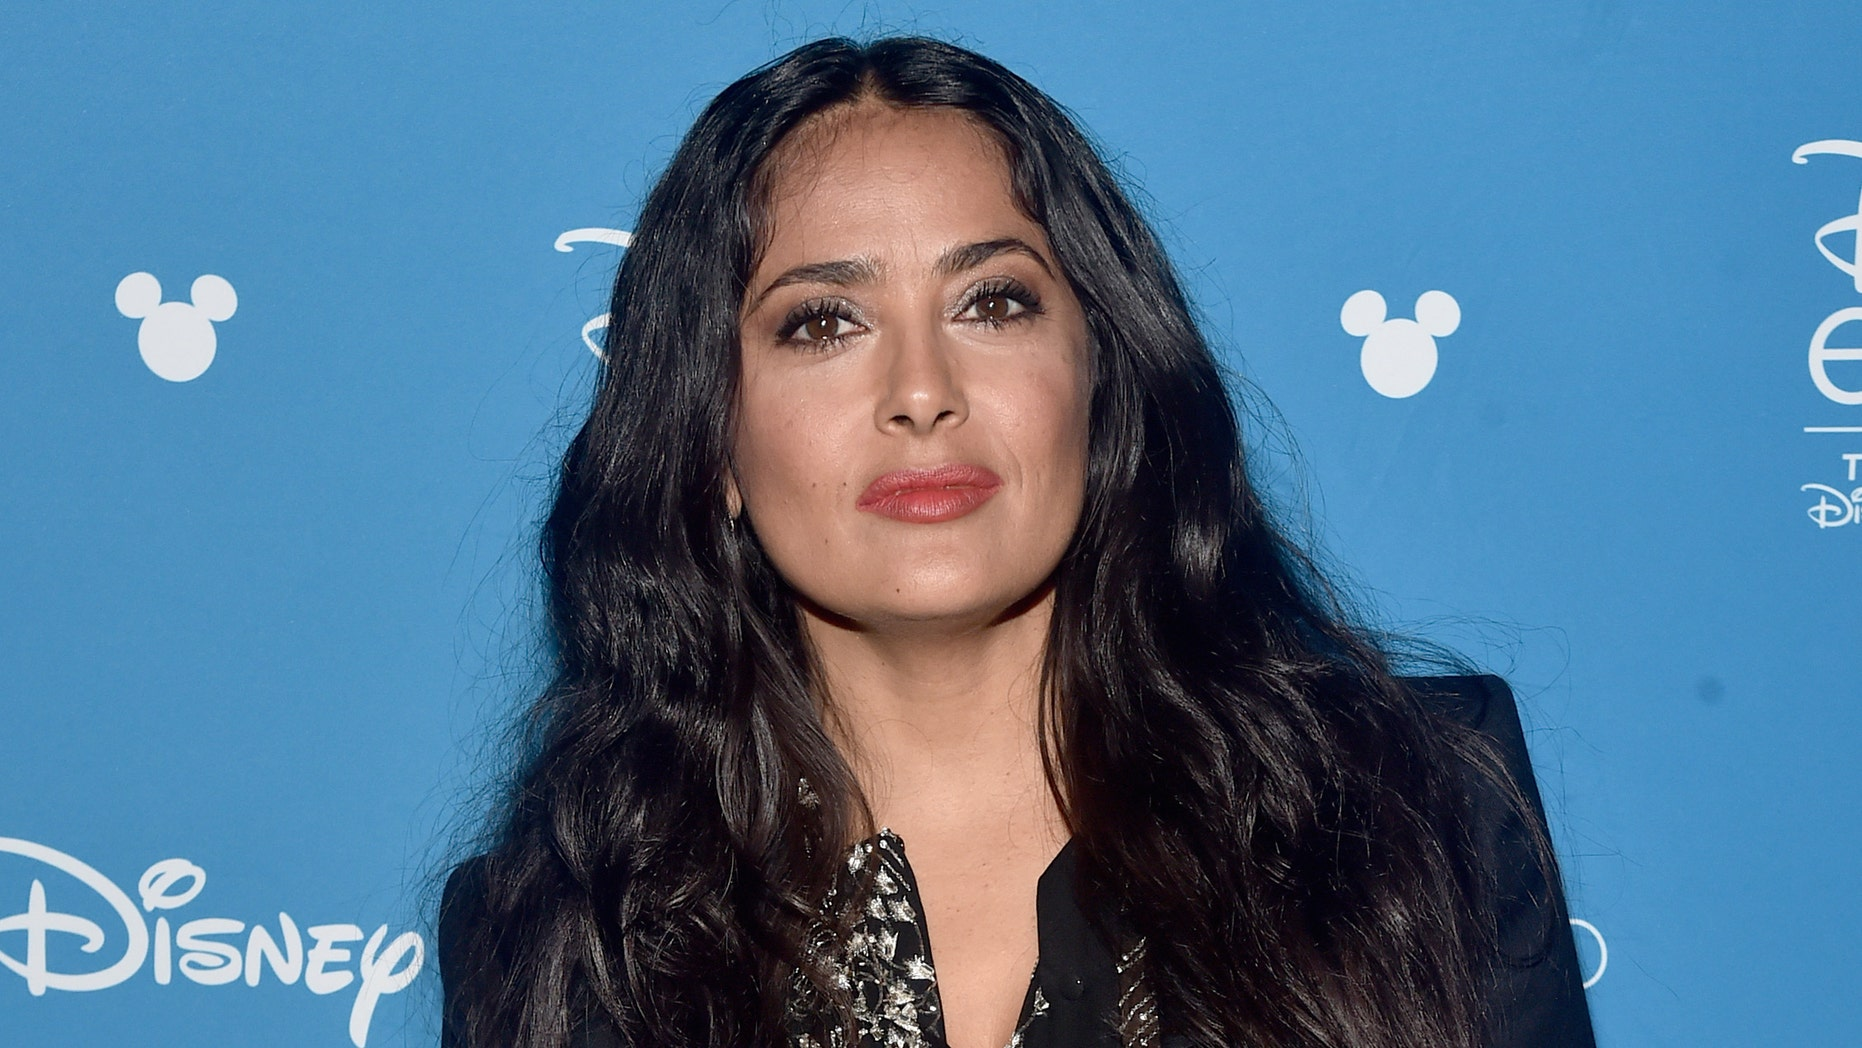 Salma Hayek joined prominent Mexican directors in starting a fund for out-of-work movie industry workers. (Alberto E. Rodriguez/Getty Images for Disney)